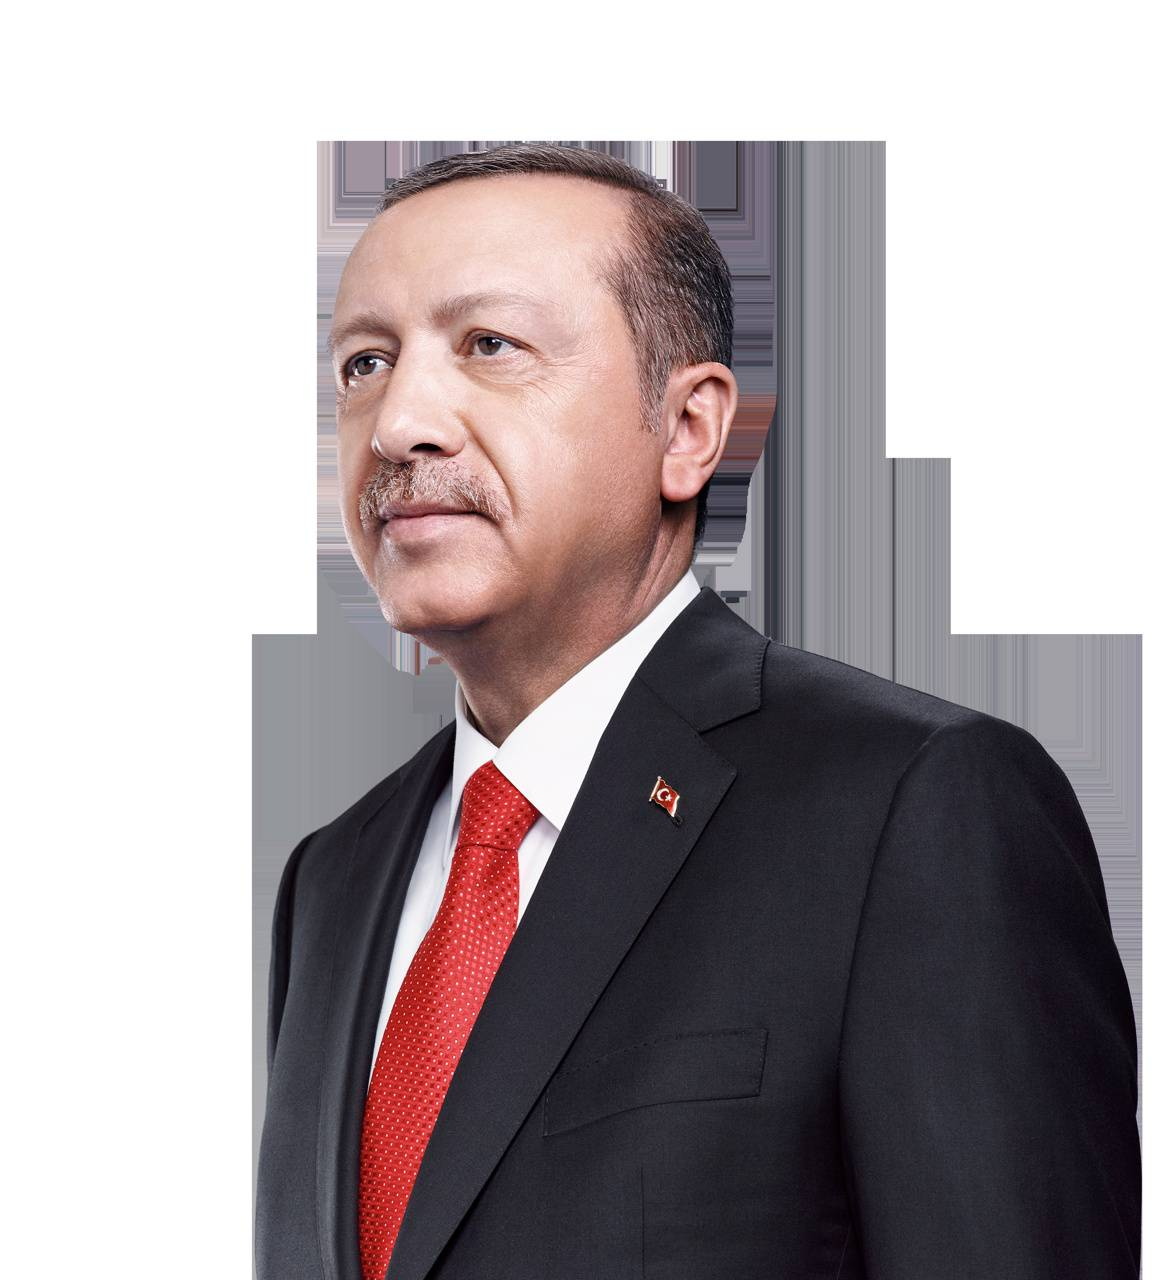 Recep Tayyip Erdogan Wallpaper By Akzeka Db Free On Zedge